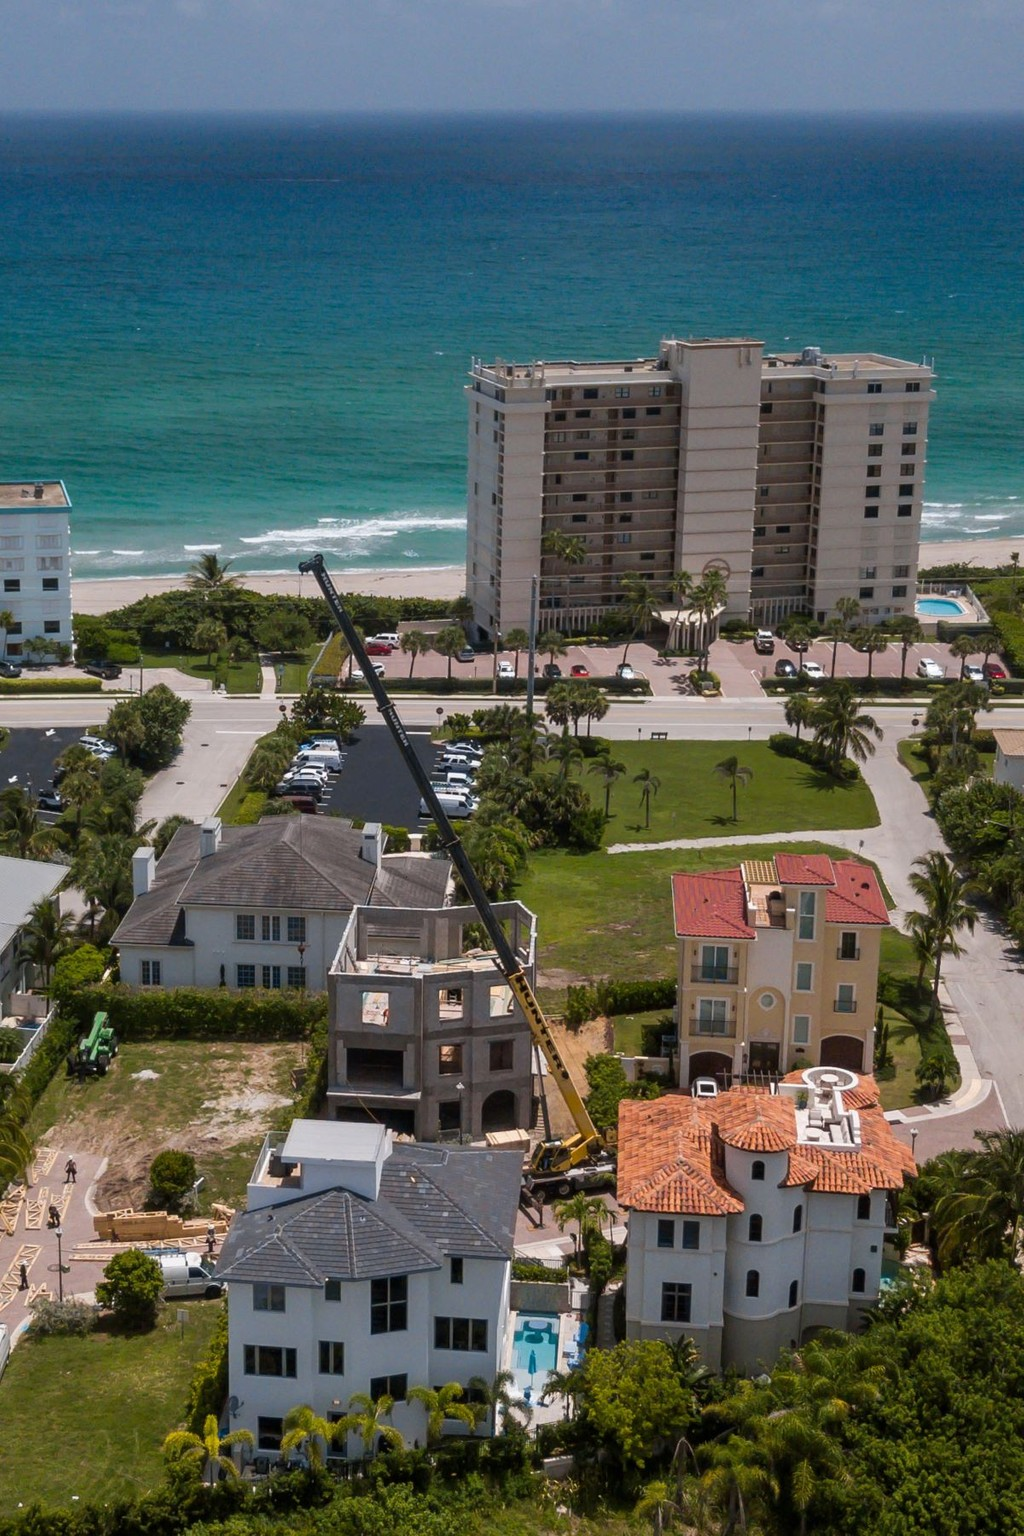 Juno Beach Homes for Sale | Summit Sotheby's International